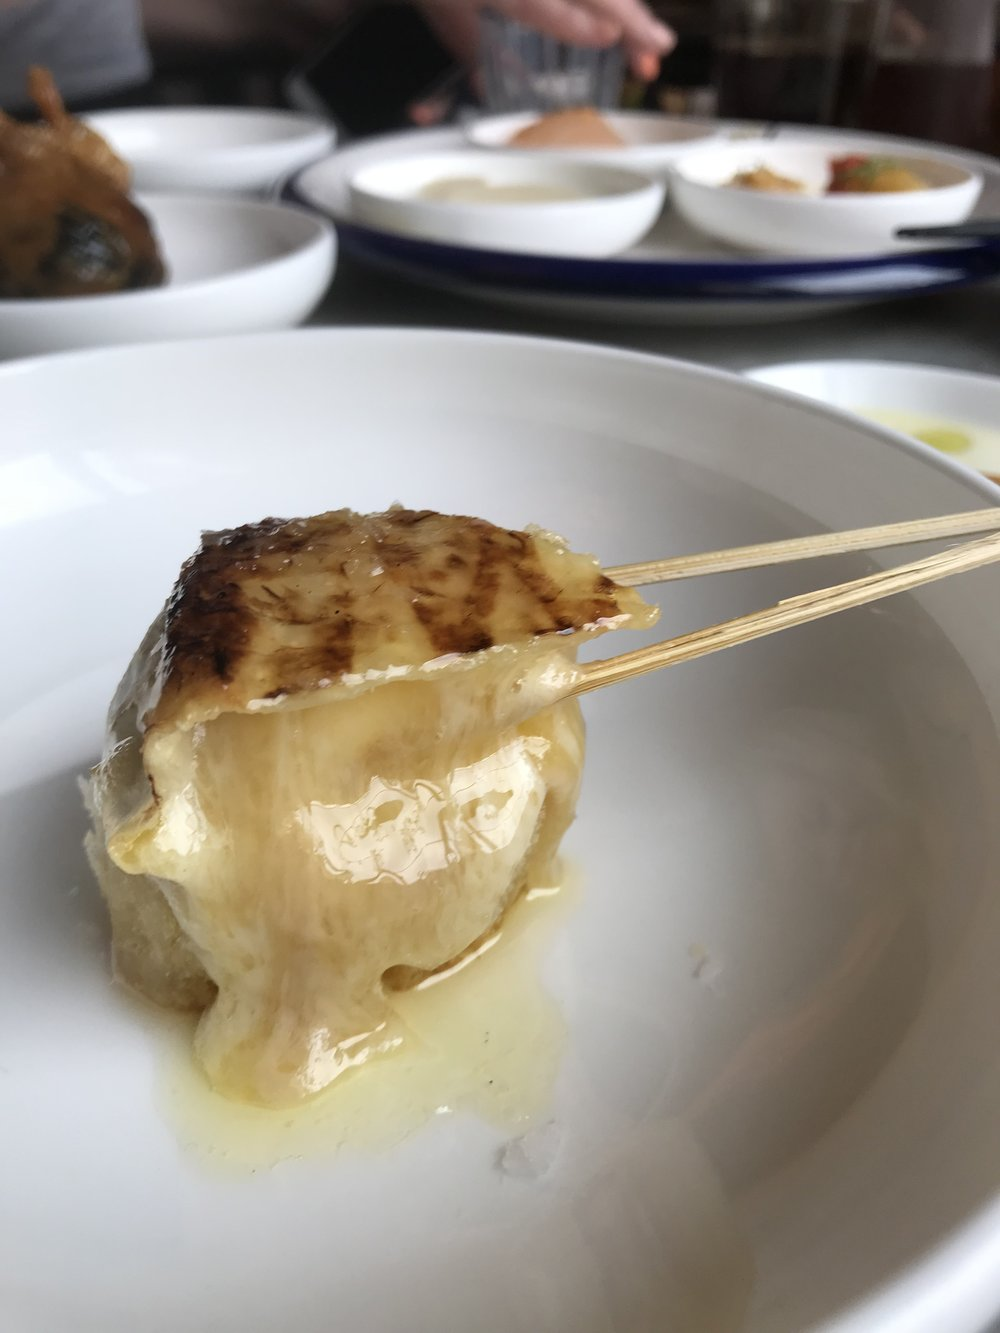 Camembert kushiyaki. PC: Meghan Milloy.